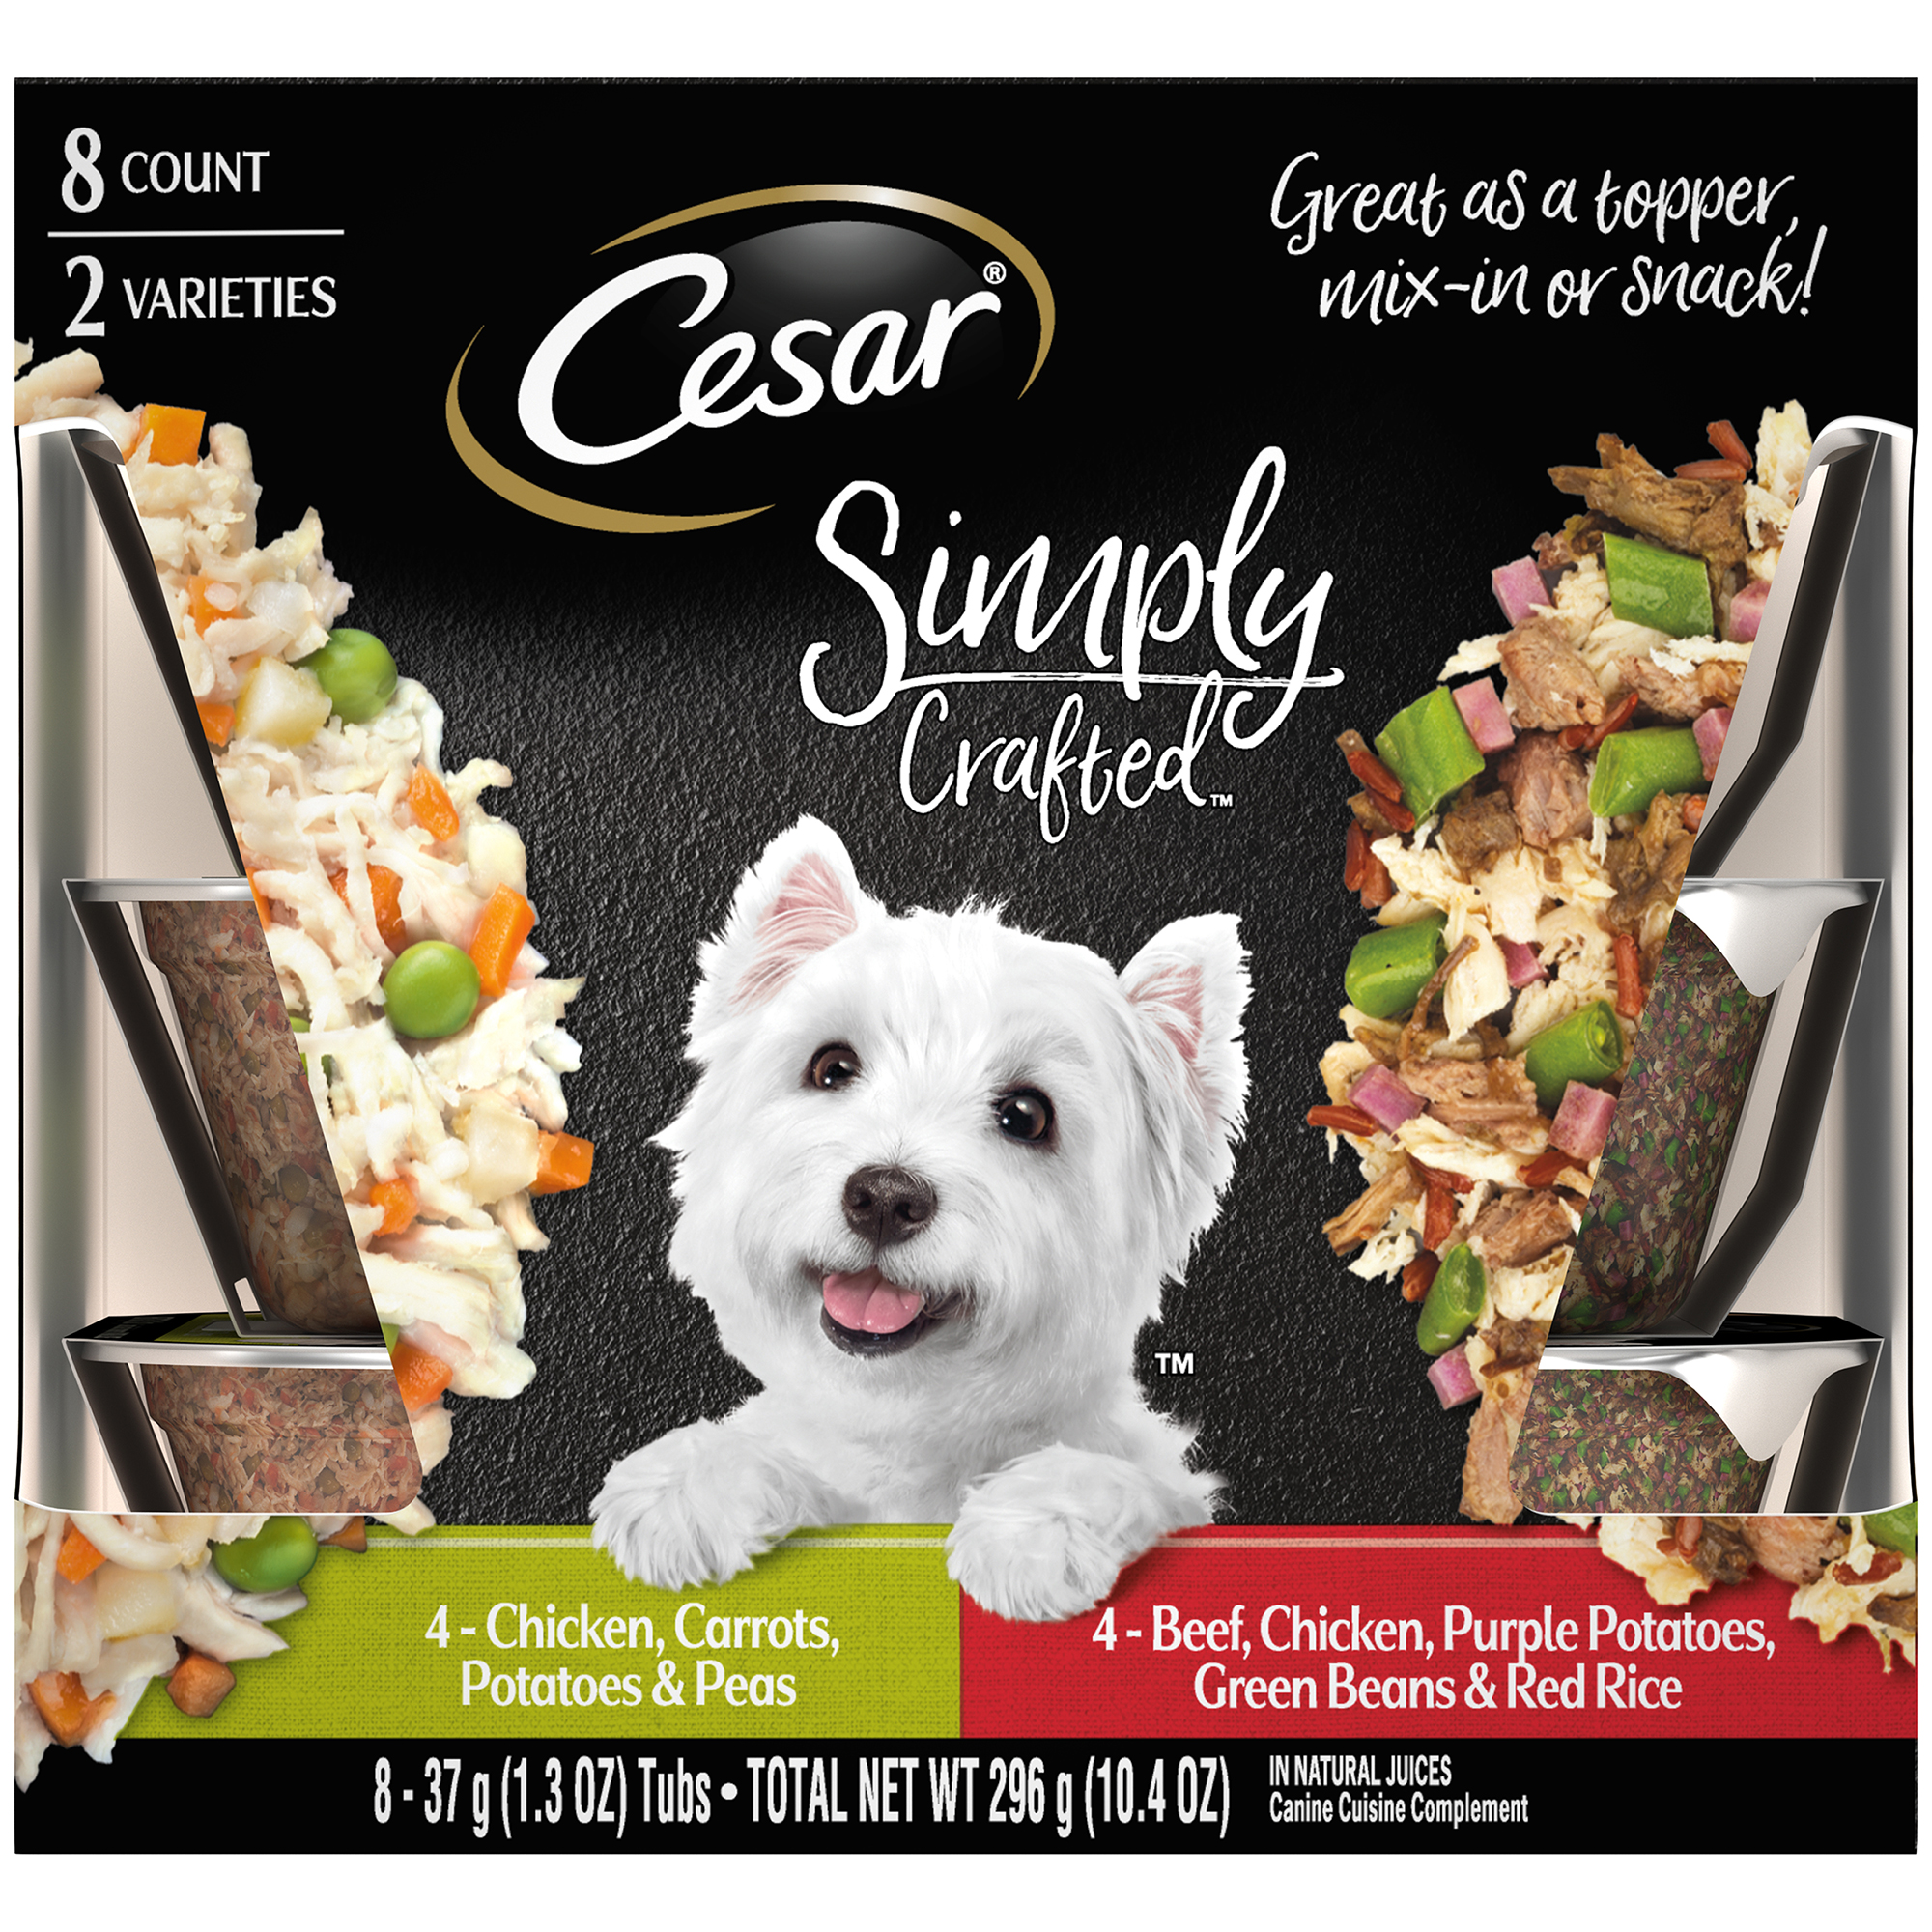 Cesar Simply Crafted Canine Cuisine Complement Adult Wet Dog Food Topper Variety Pack Chicken, Carrots, Potatoes & Peas, and Beef, Chicken, Purple Potatoes, Green Beans & Red Rice, (8) 1.3 oz Tubs